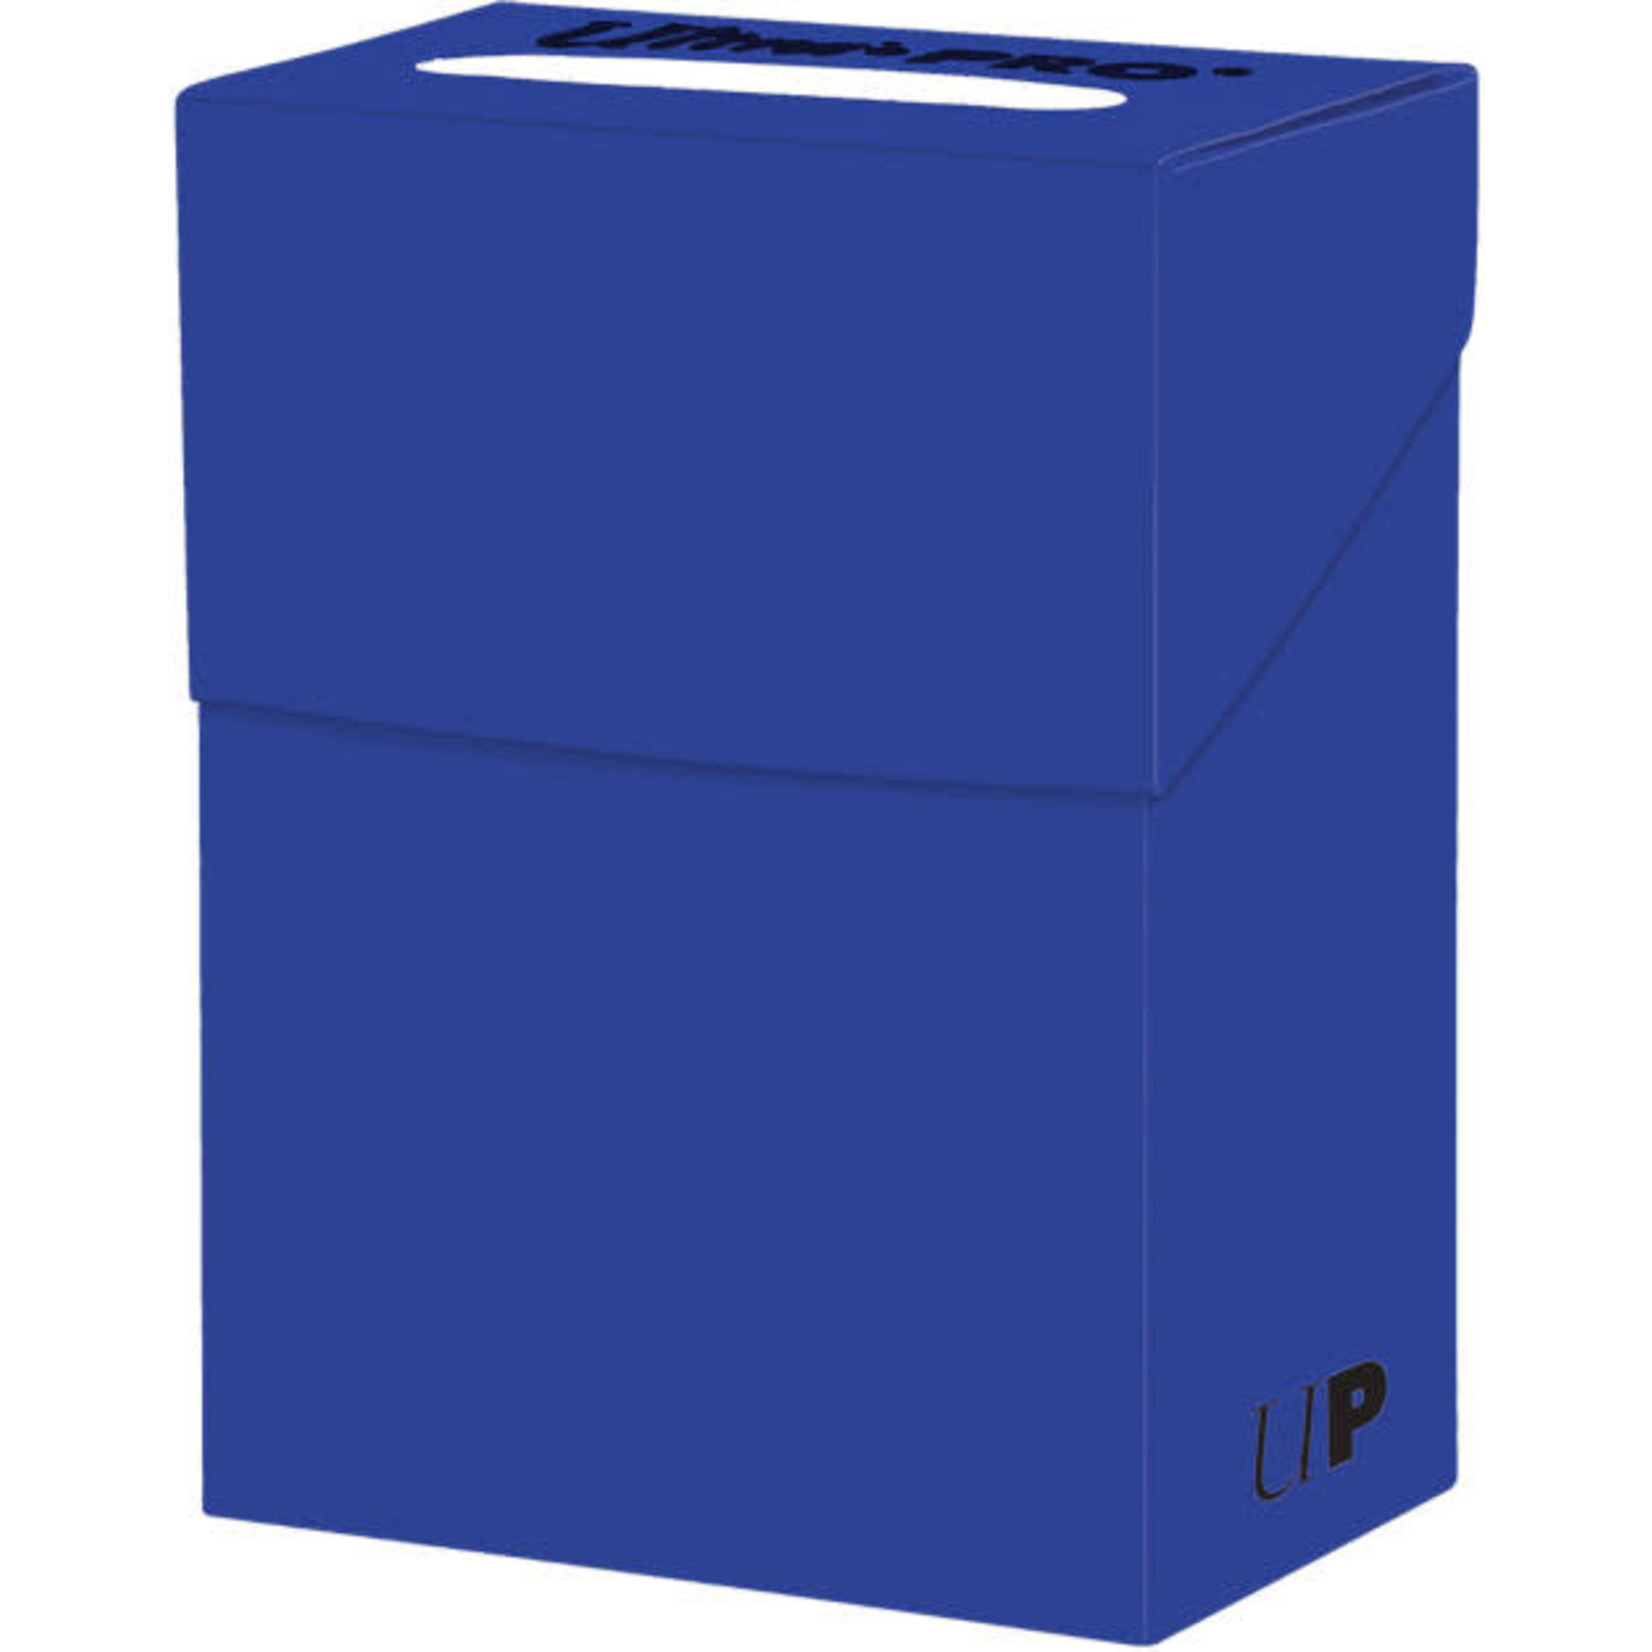 Solid Pacific Blue Deck Box